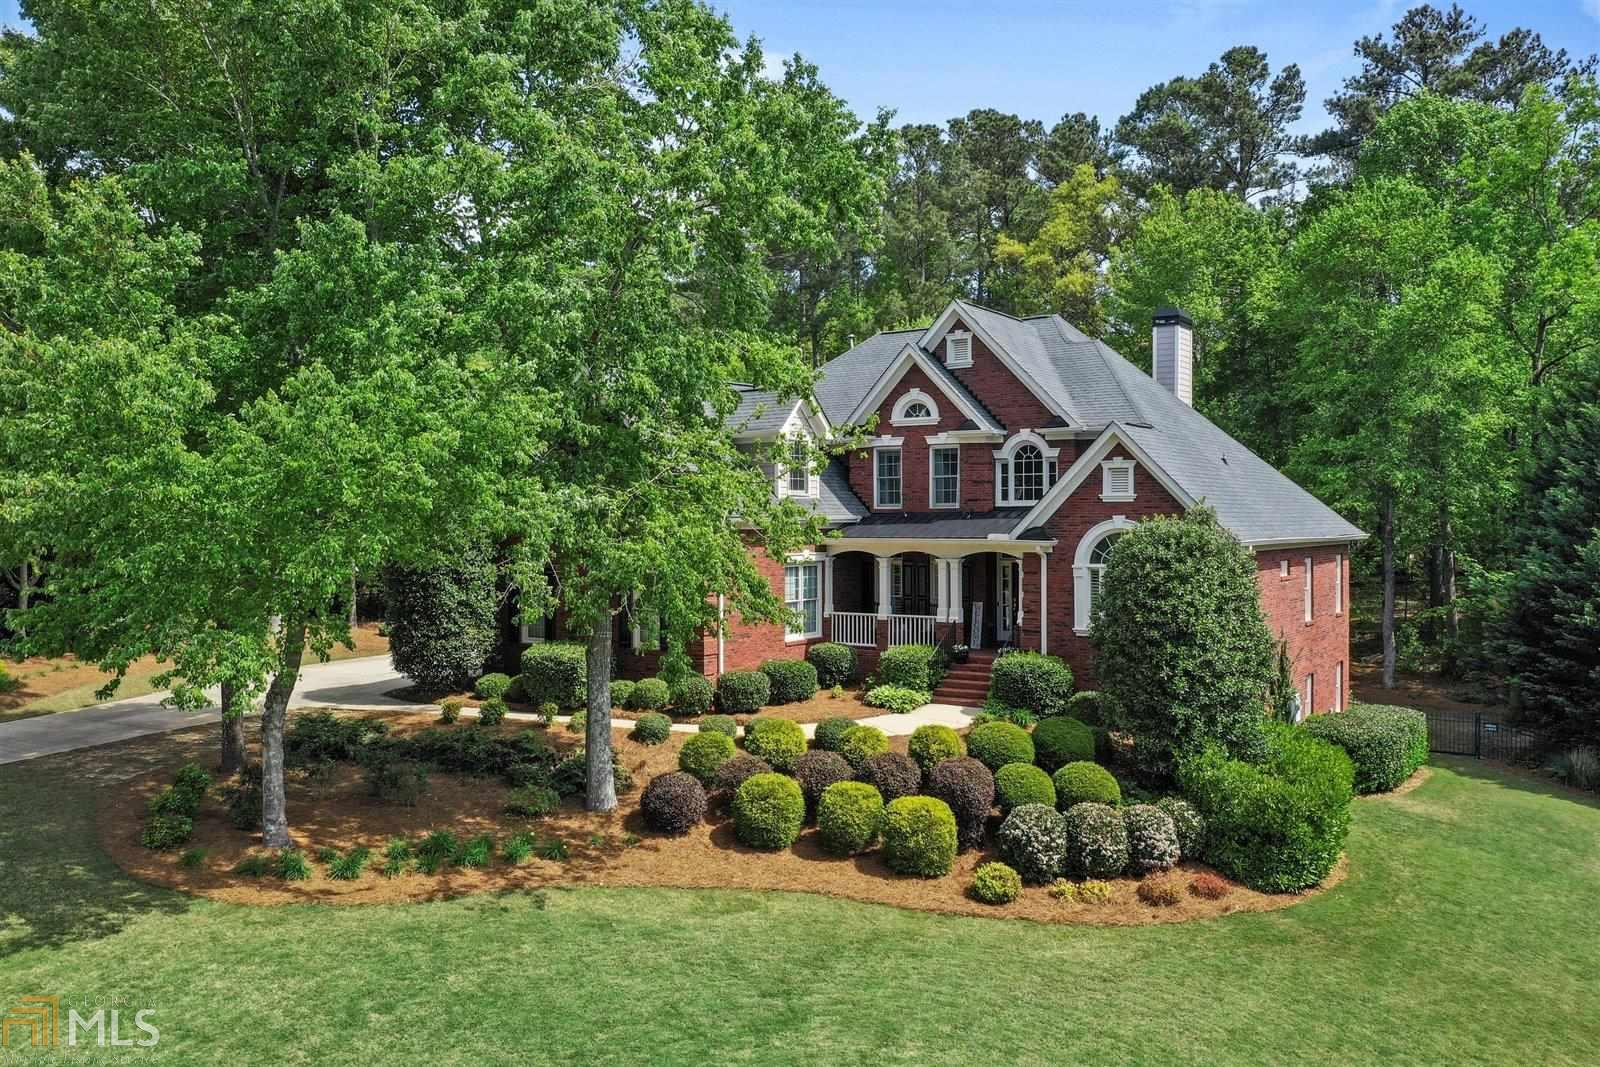 Image for property 888 Foxwerthe Dr, Kennesaw, GA 30152